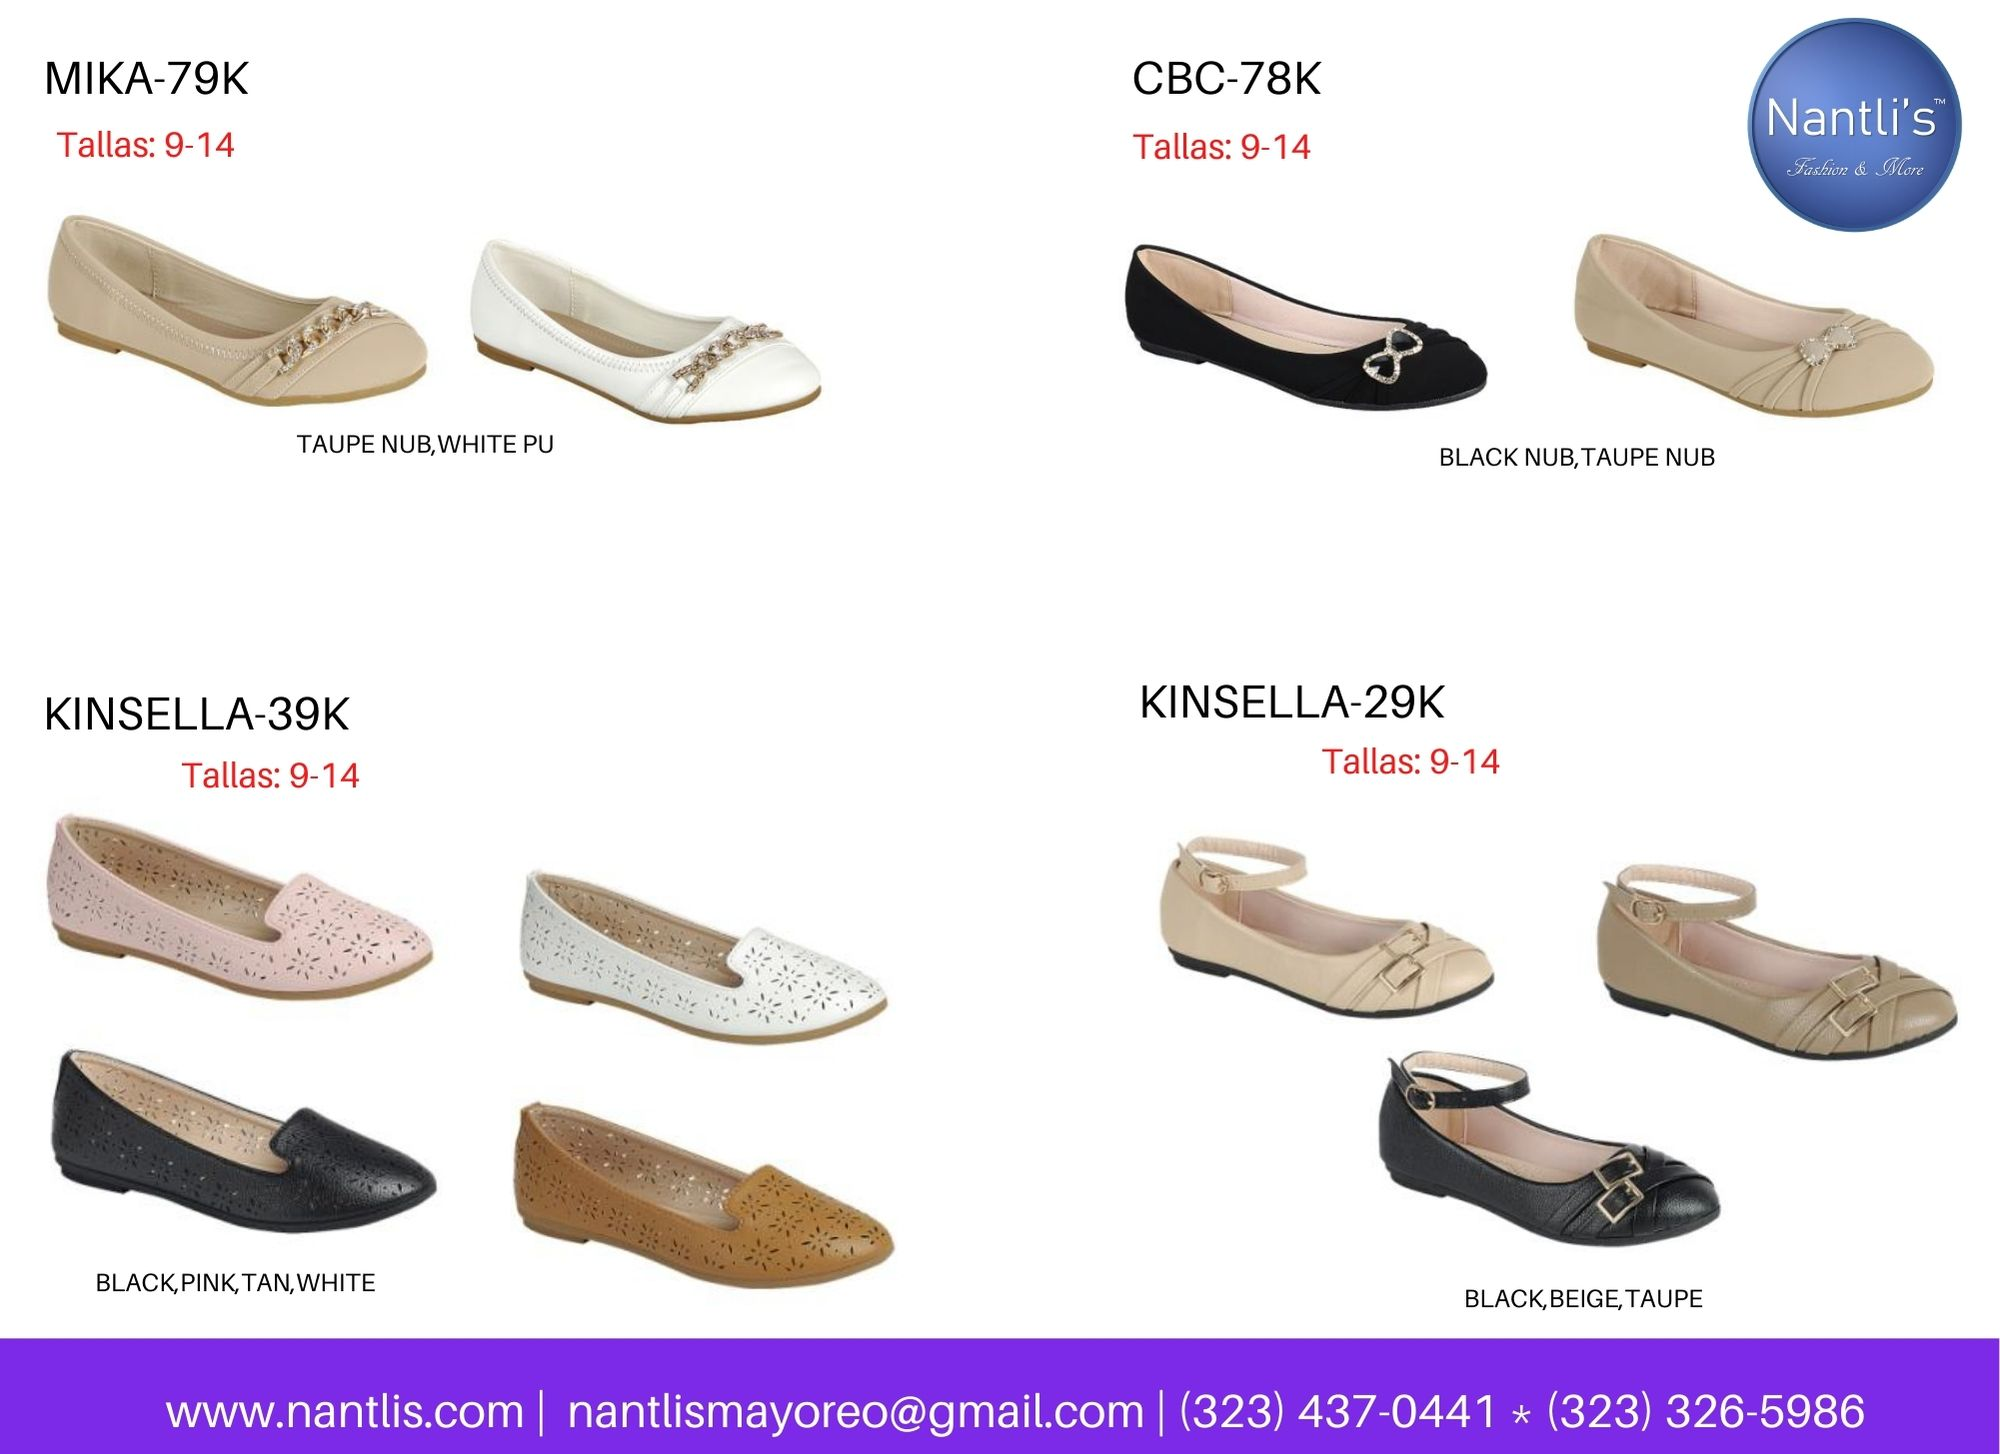 Catalogo Vol FL28 Tenis y Zapatos de ninas Mayoreo Wholesale girls shoes and tennis shoes for kids page 08